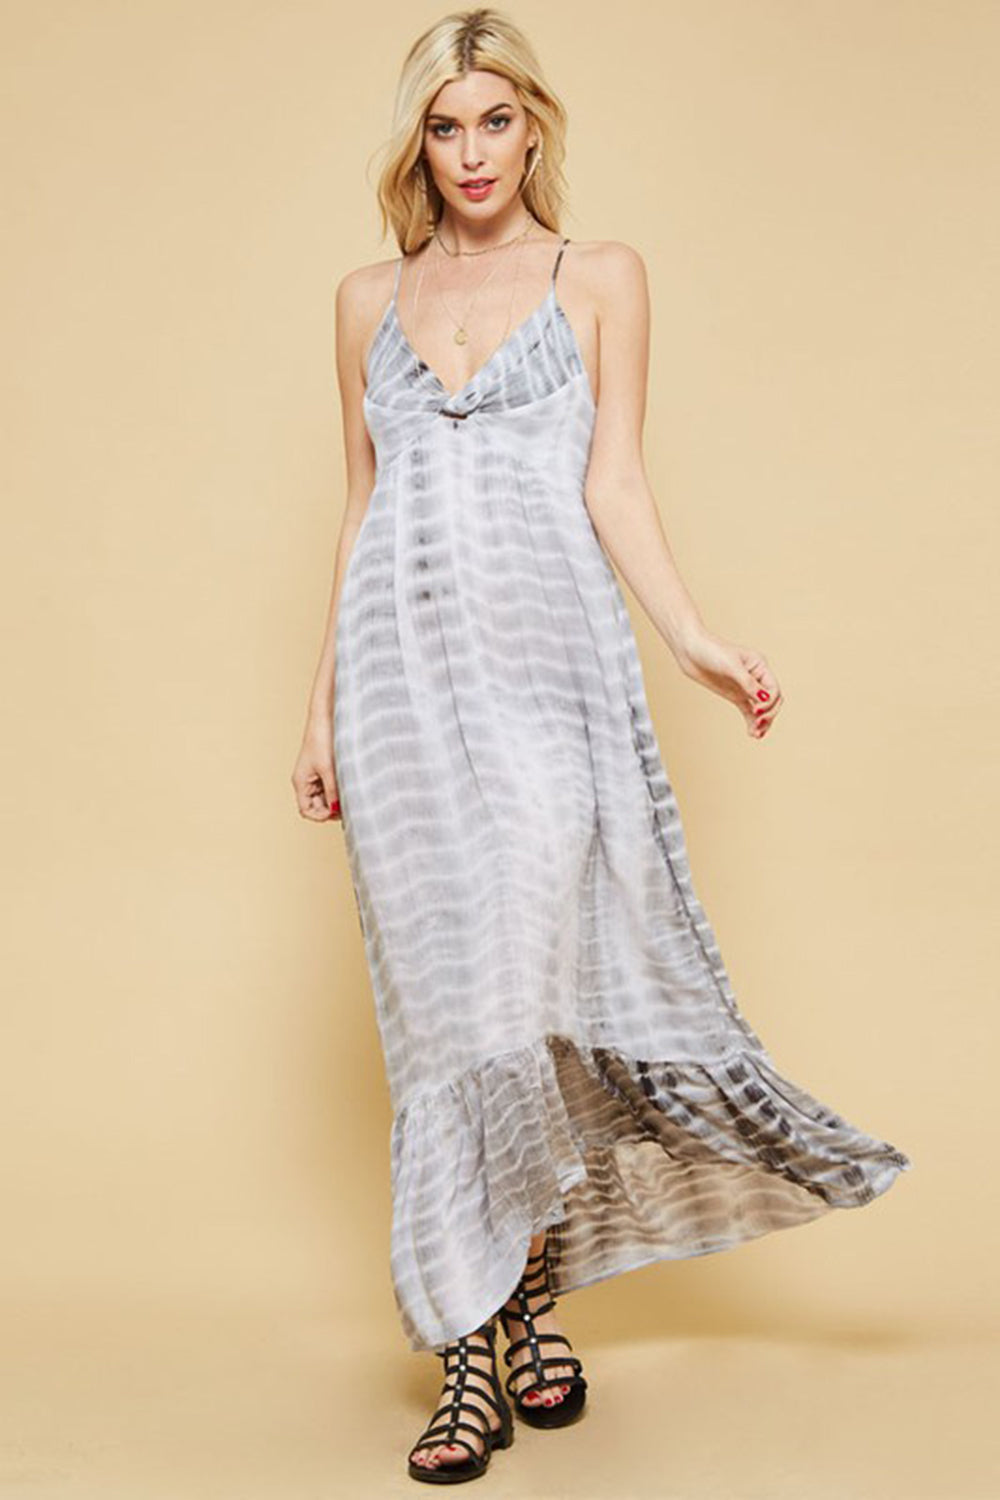 Aynara Fashion Tie-Dye Maxi Dress